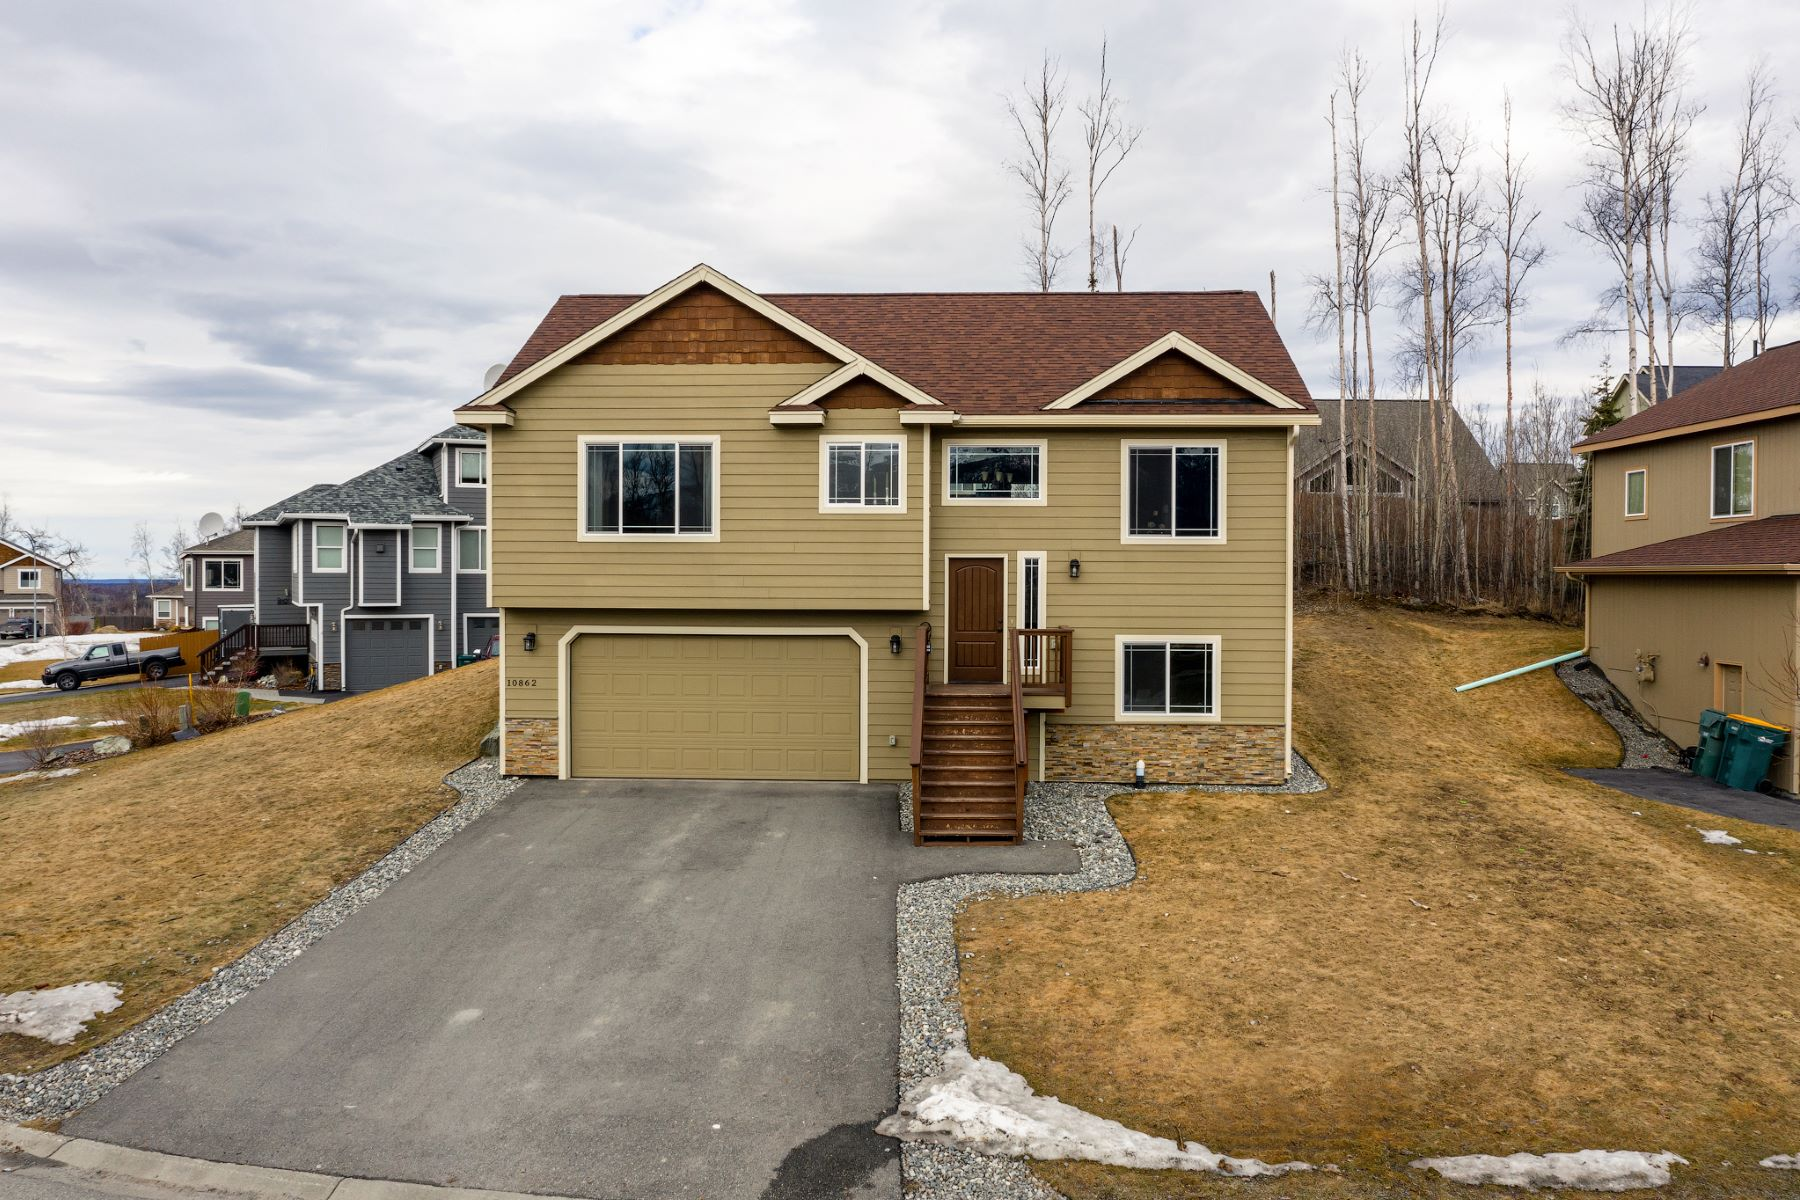 Single Family Homes for Sale at 10562 Splendor Loop 10862 Splendor Loop Eagle River, Alaska 99577 United States